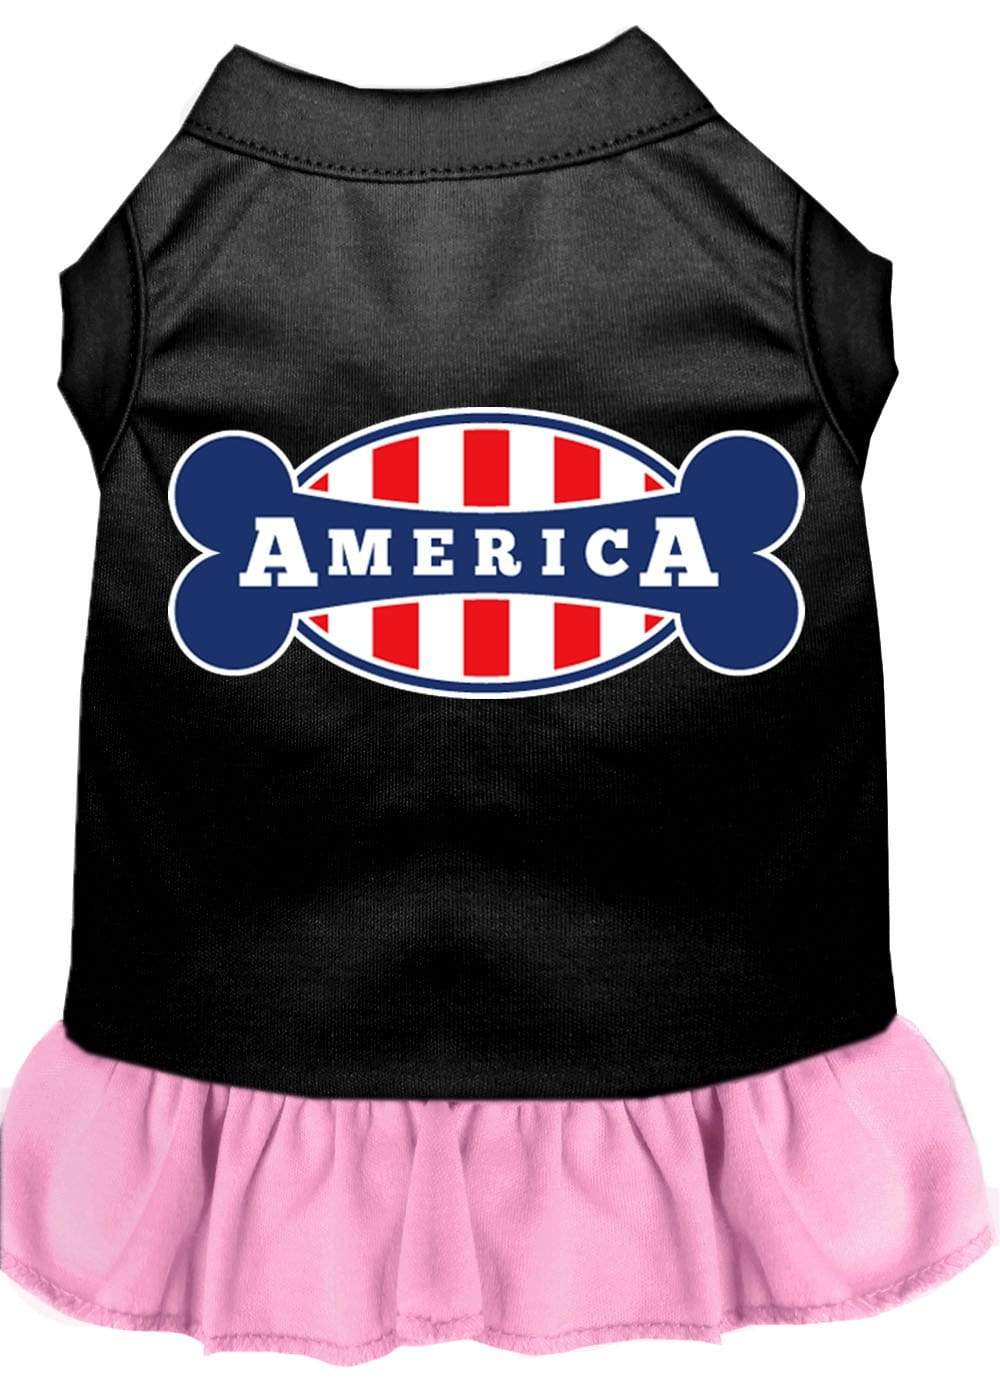 Doggy Stylz Dog-products Apparel Black With Light Pink / LARGE Bonely In America Screen Print Dress Black